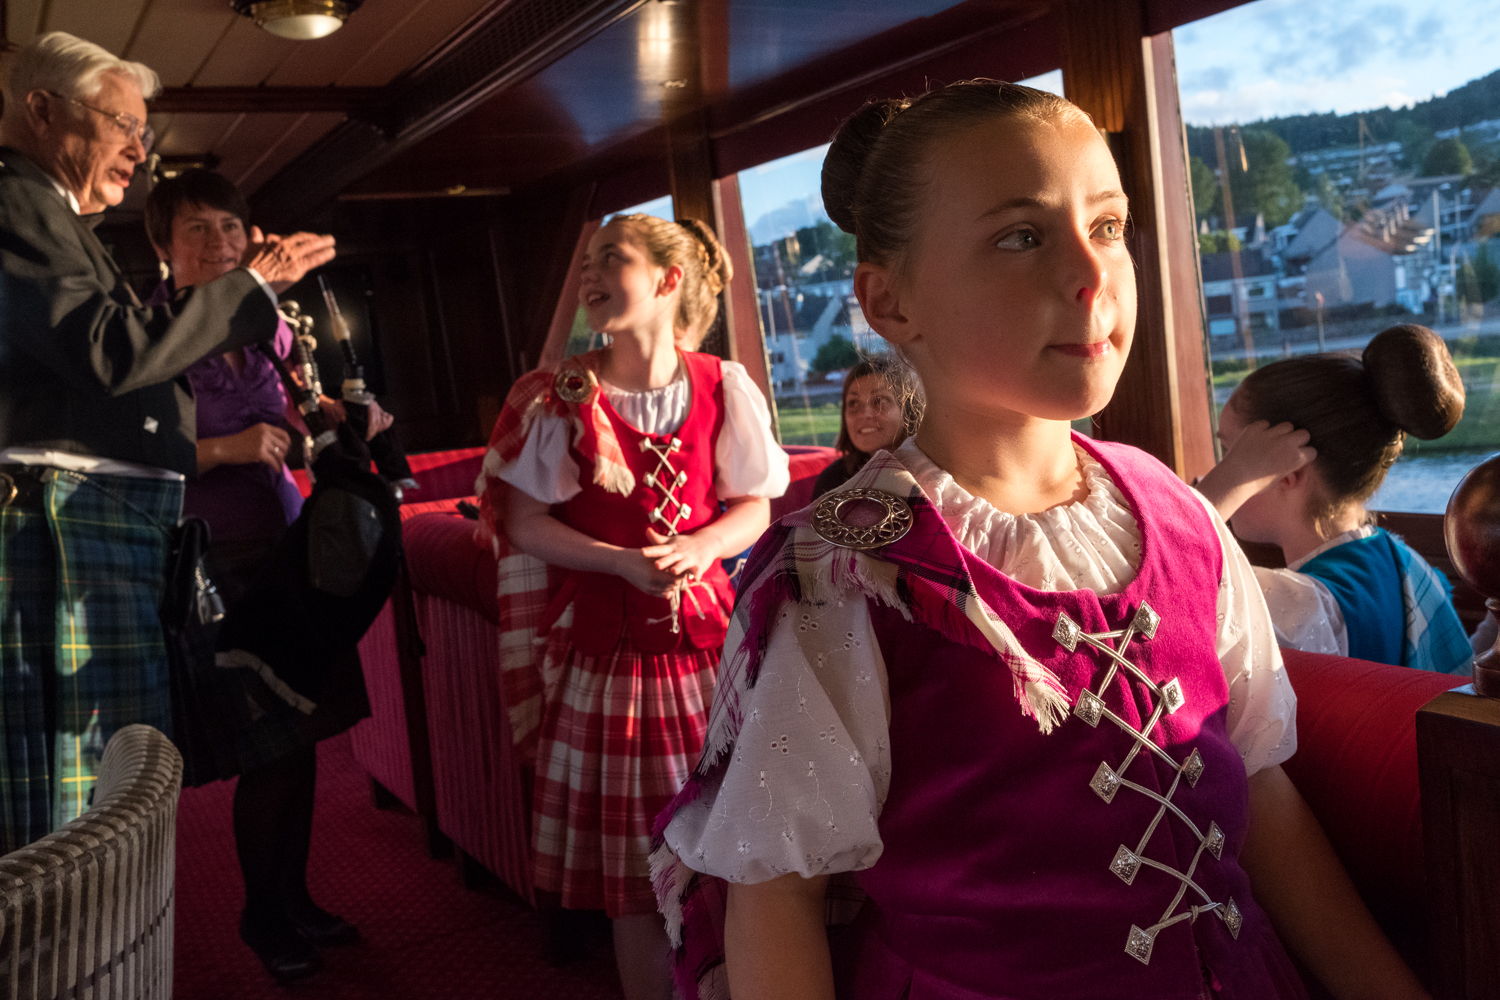 A young Highland dancer waits for her chance to perform for guests aboard Lord of the Glens.